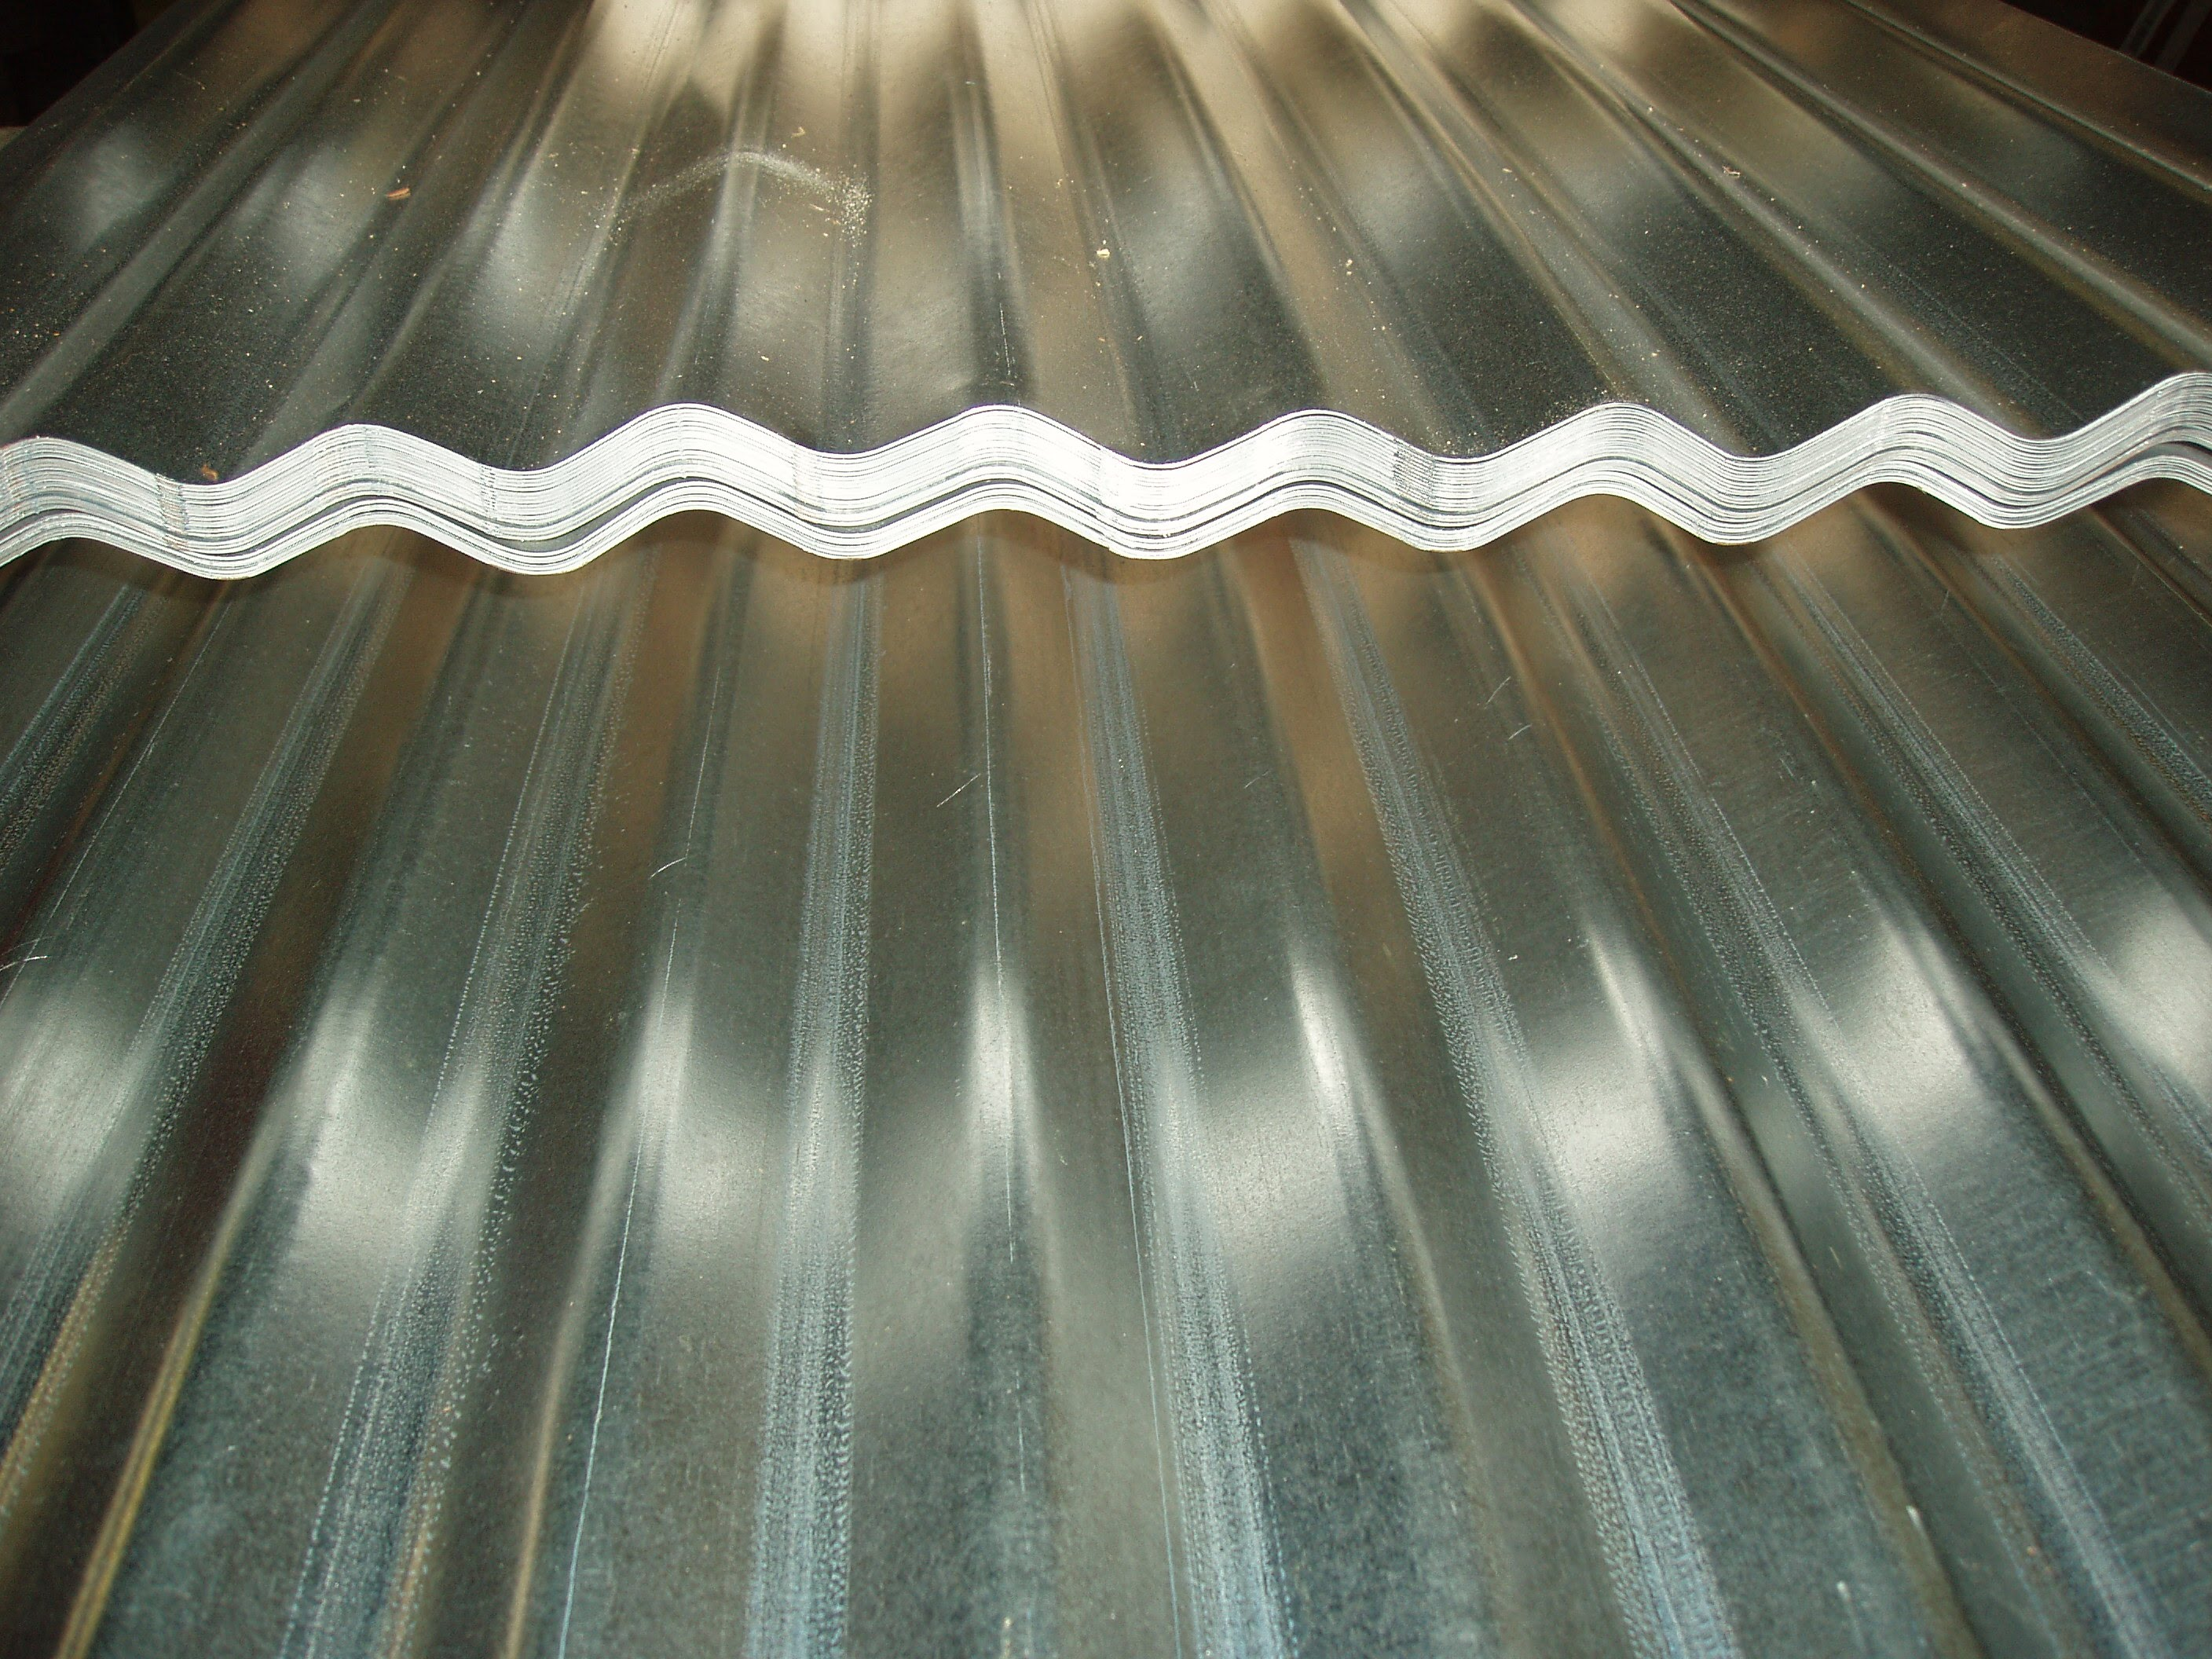 Galvanized Corrugated Sheets (Roofing Sheets)   Exporter Of Galvanized  Coils And Sheets, Color Coated PPGI, Stainless Steel, Corrugated Sheets,  Cold Rolled ...